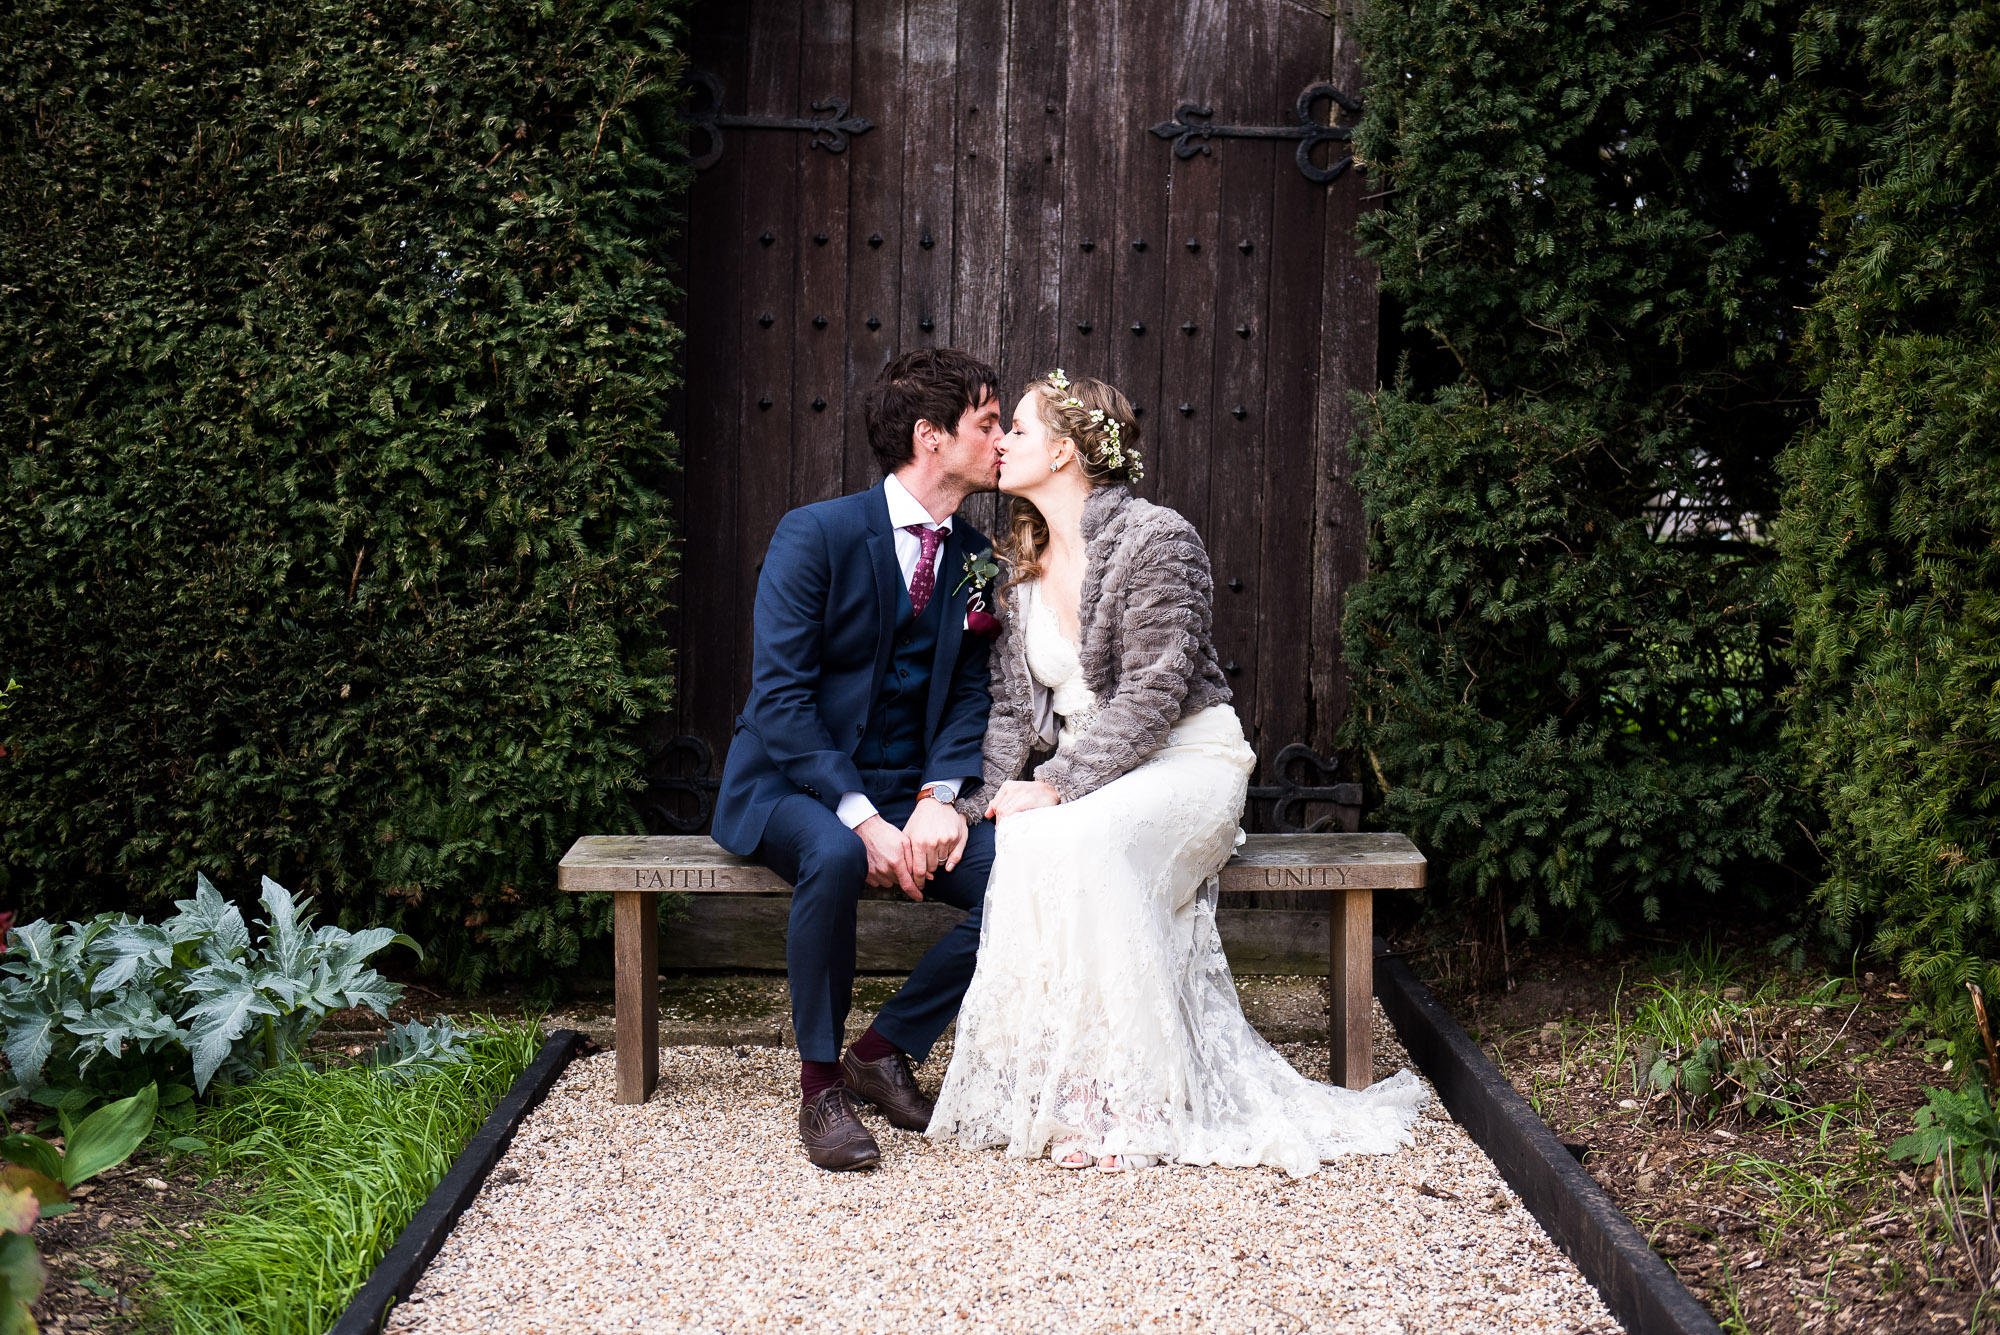 boho bride and groom wearing blue suit sharing a kiss